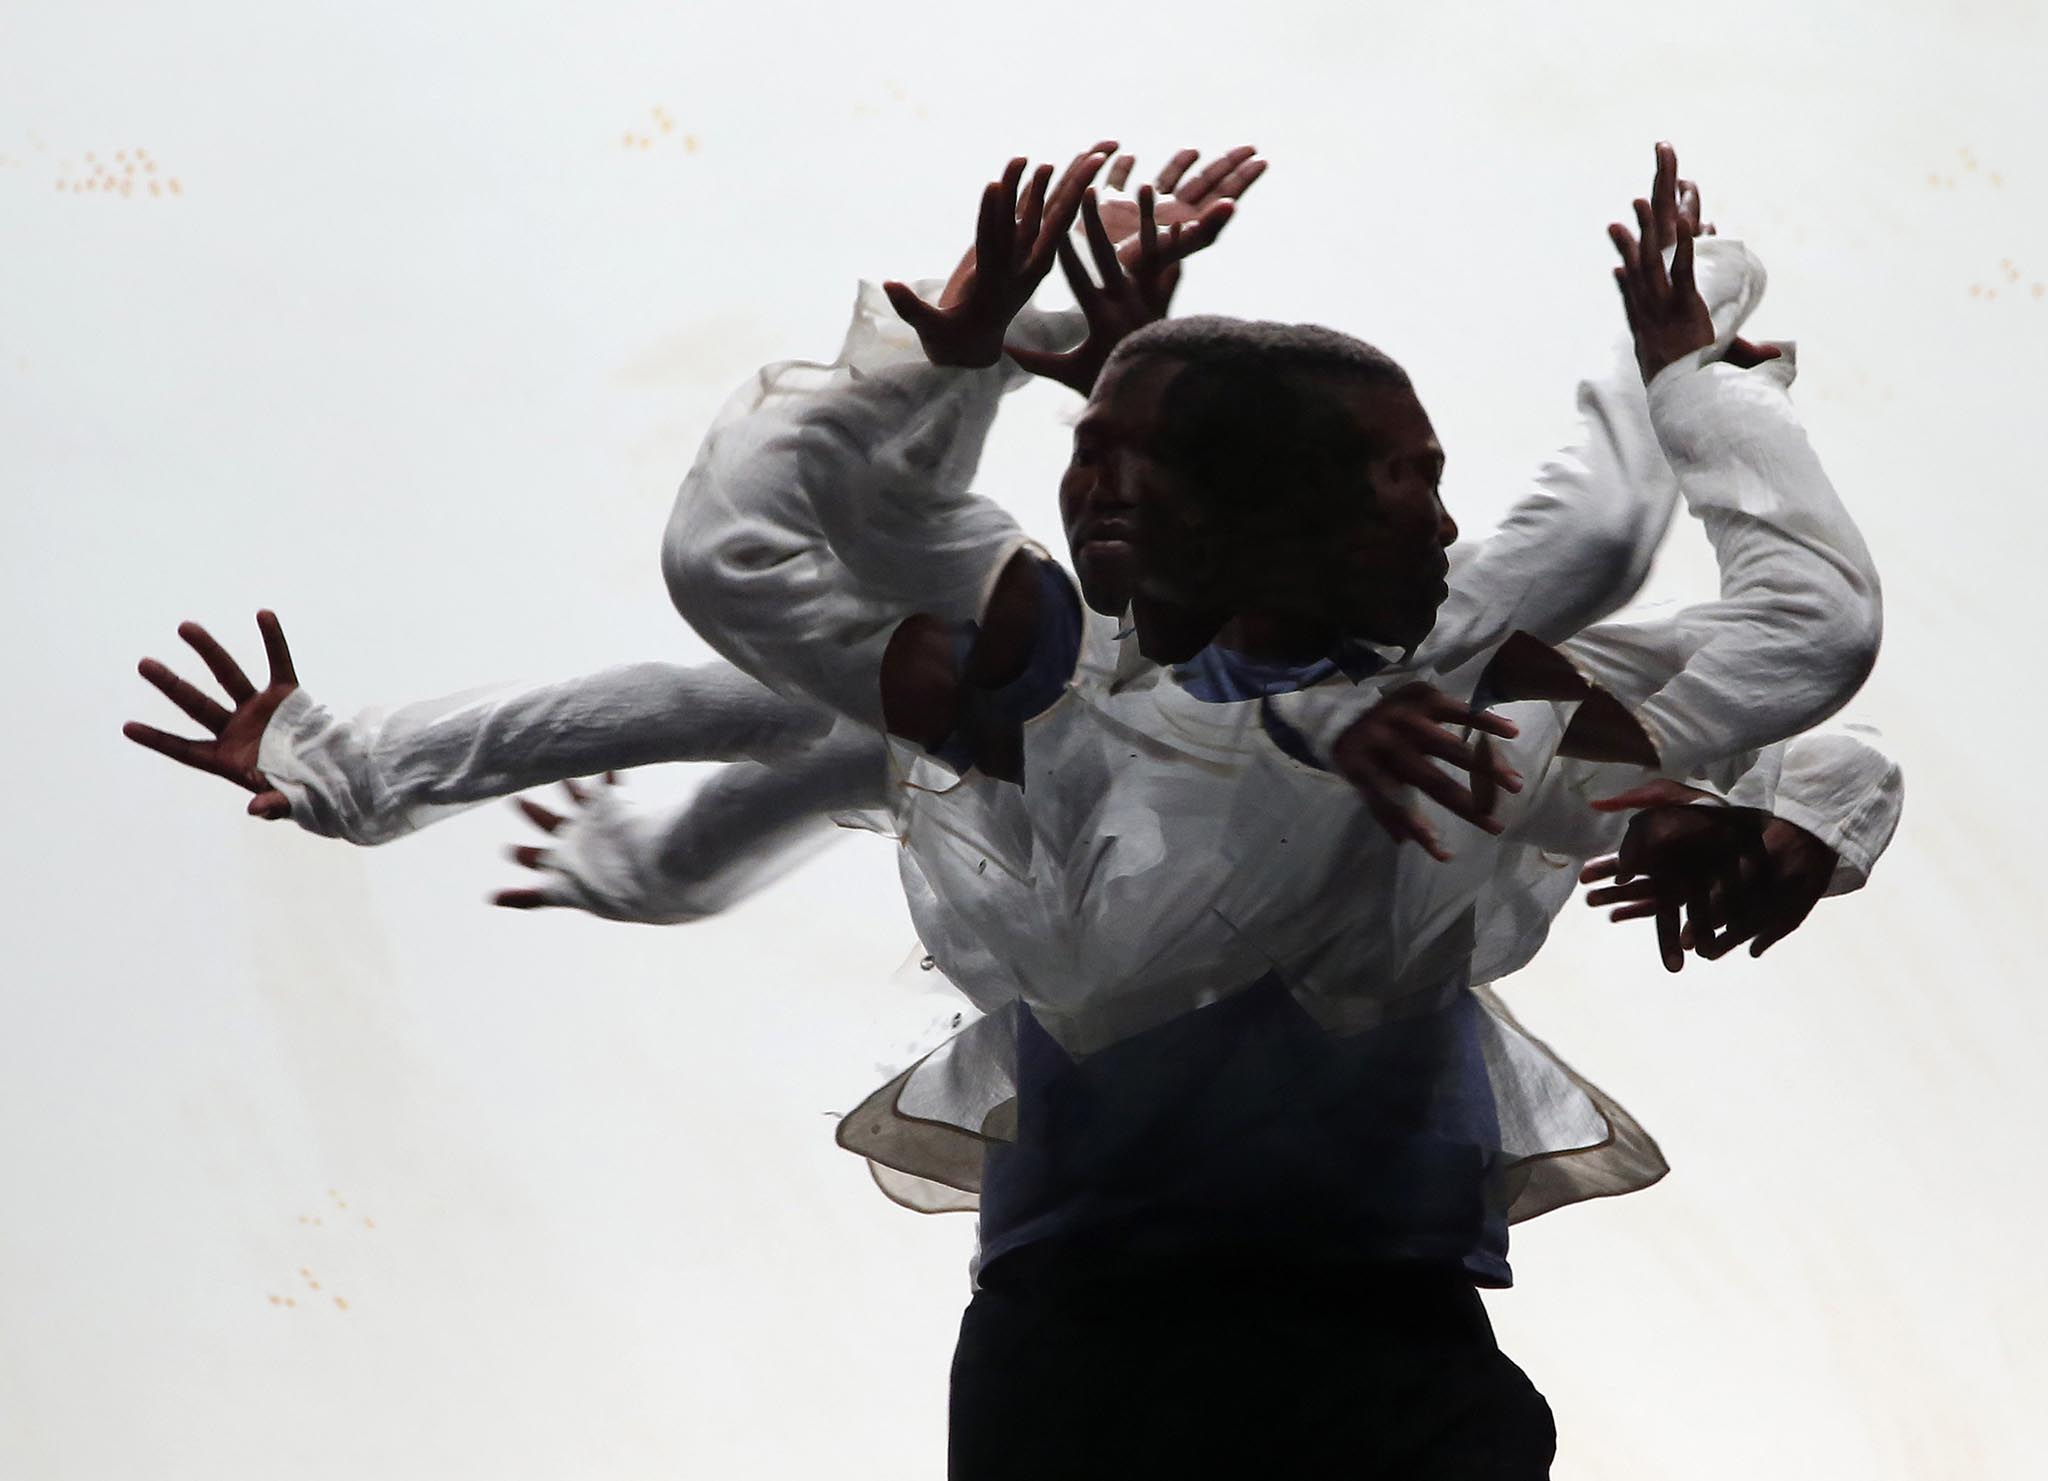 South African dancer Maqoma performs in a dress rehearsal during the Malta Arts Festival in Valletta